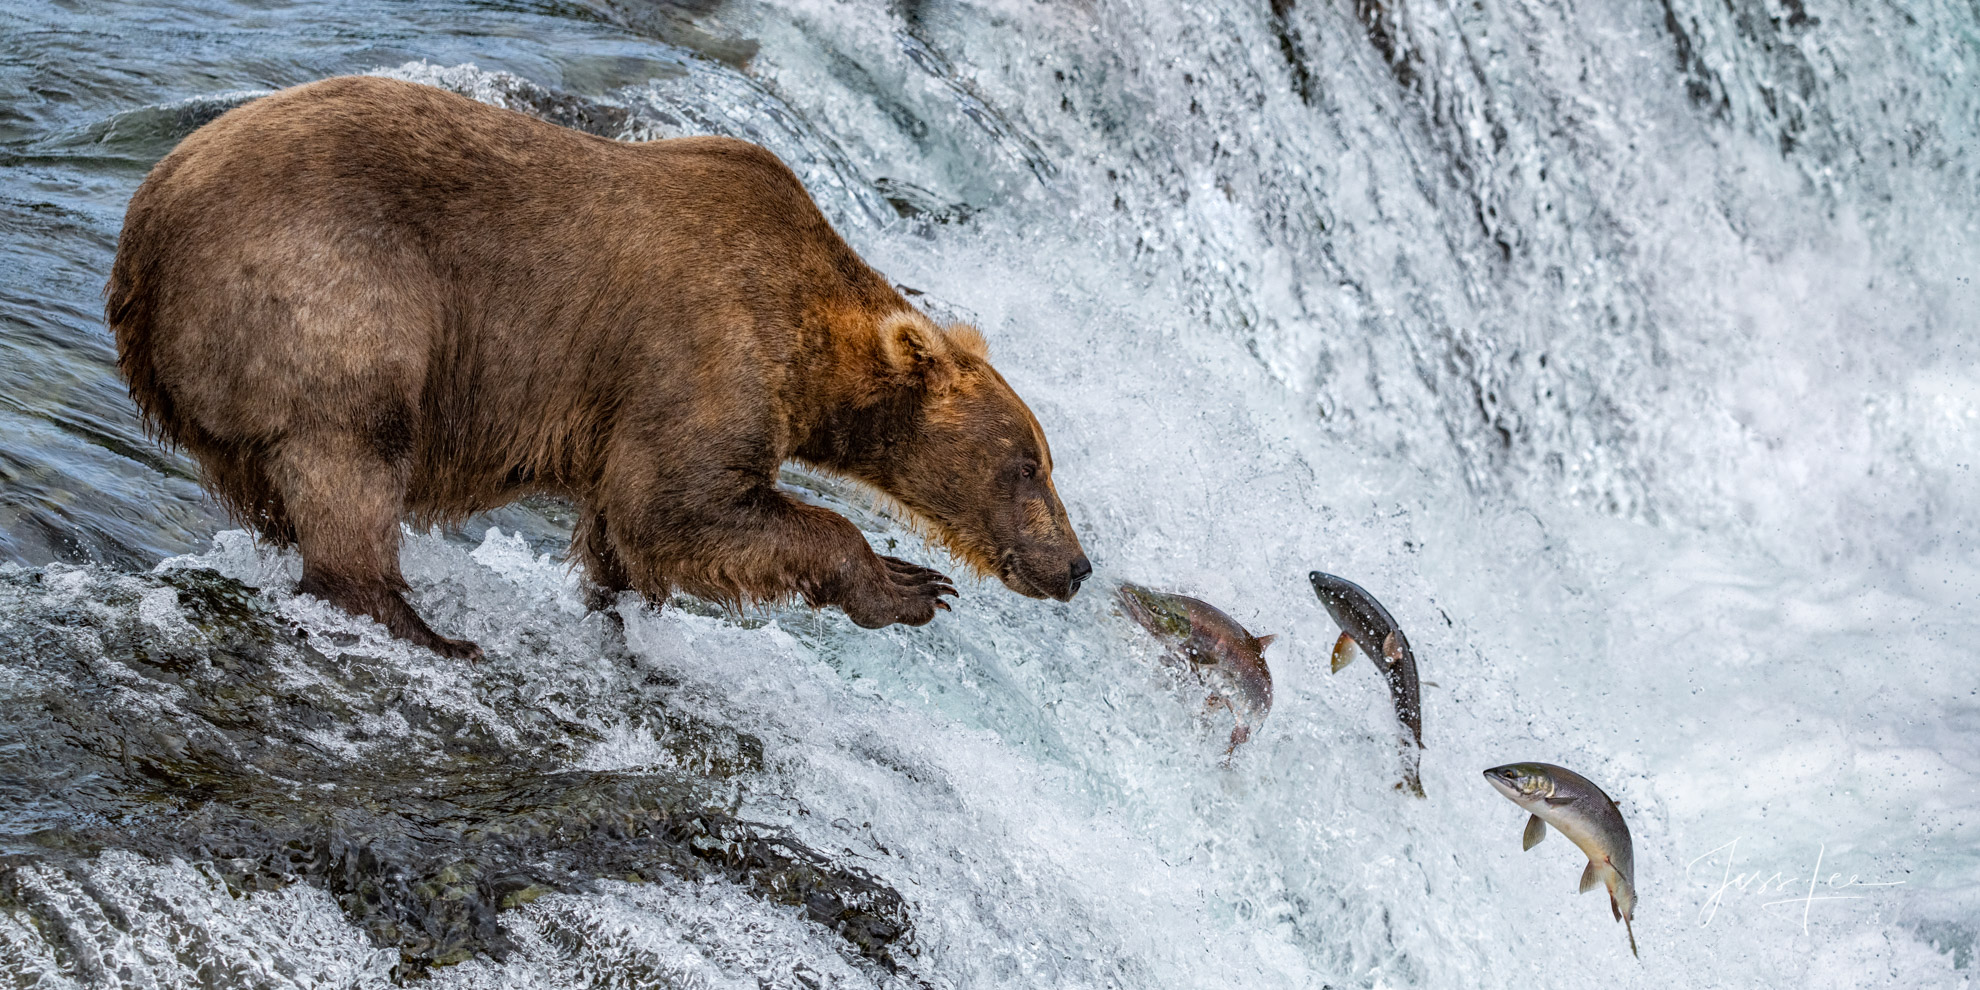 Grizzly bear fishing,, photo